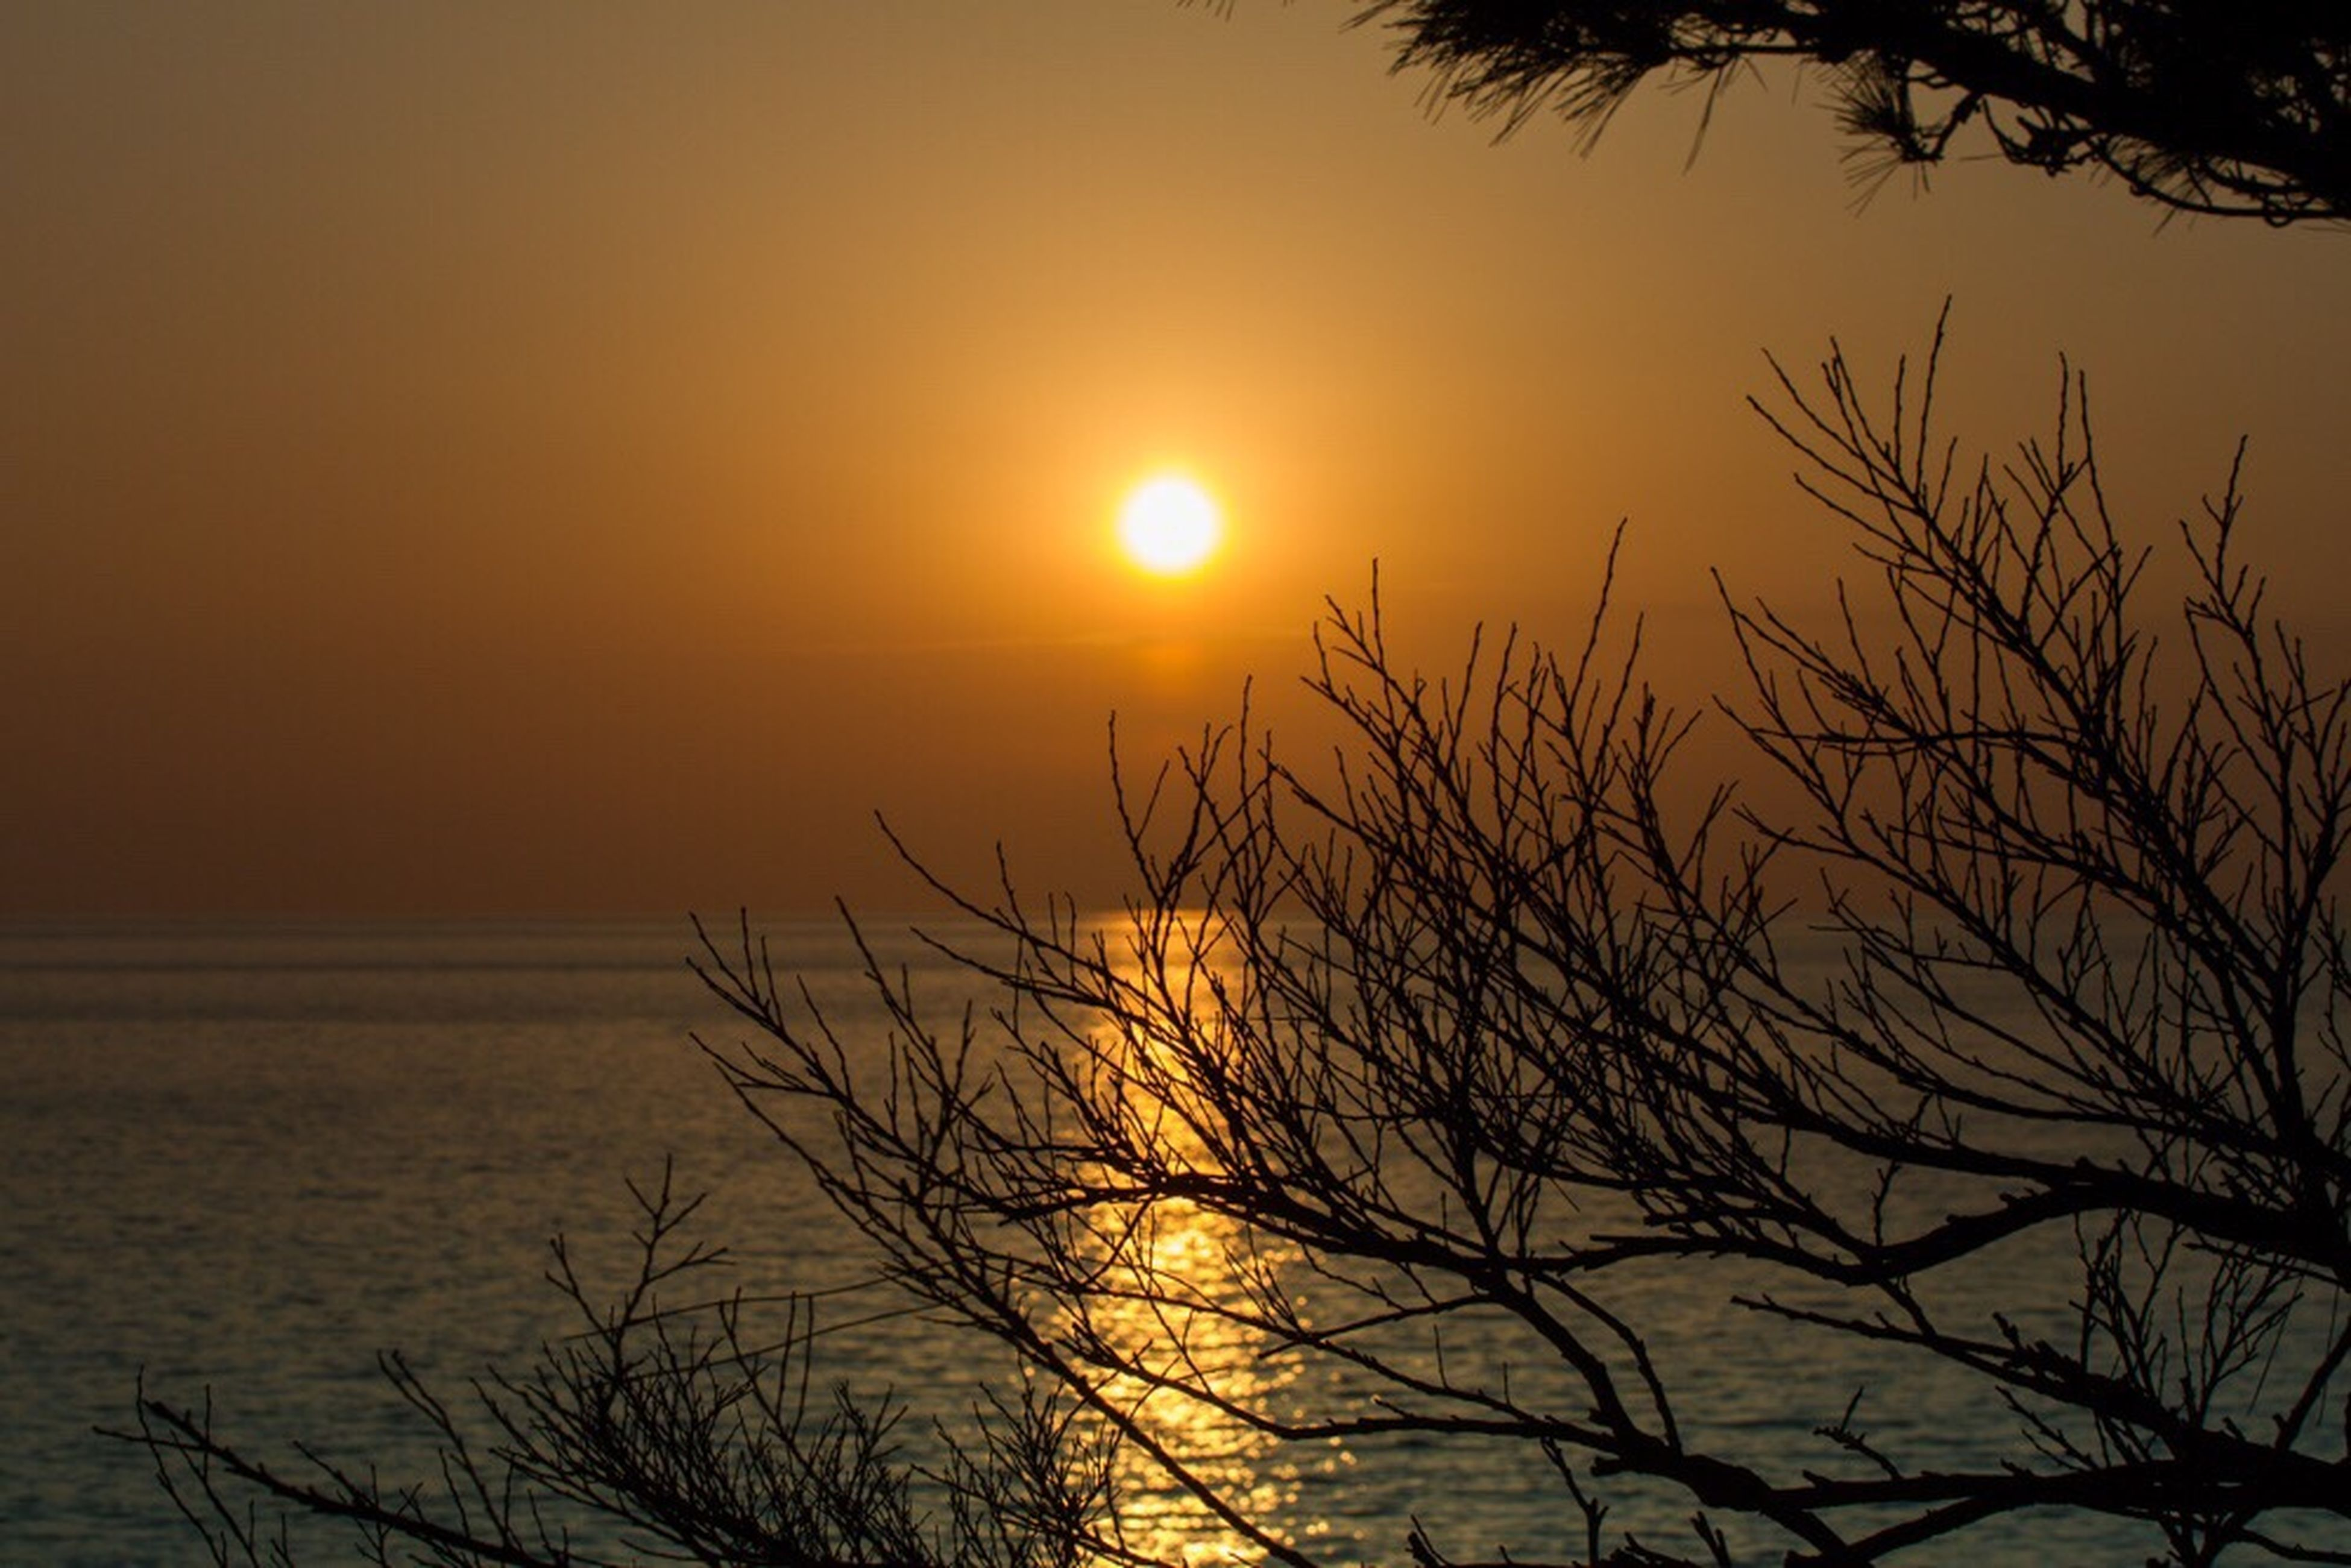 sun, sunset, scenics, beauty in nature, tranquil scene, branch, silhouette, orange color, tranquility, idyllic, tree, sea, bare tree, water, majestic, nature, vibrant color, sky, glowing, outdoors, romantic sky, non-urban scene, back lit, dramatic sky, calm, high section, atmosphere, moody sky, vacations, no people